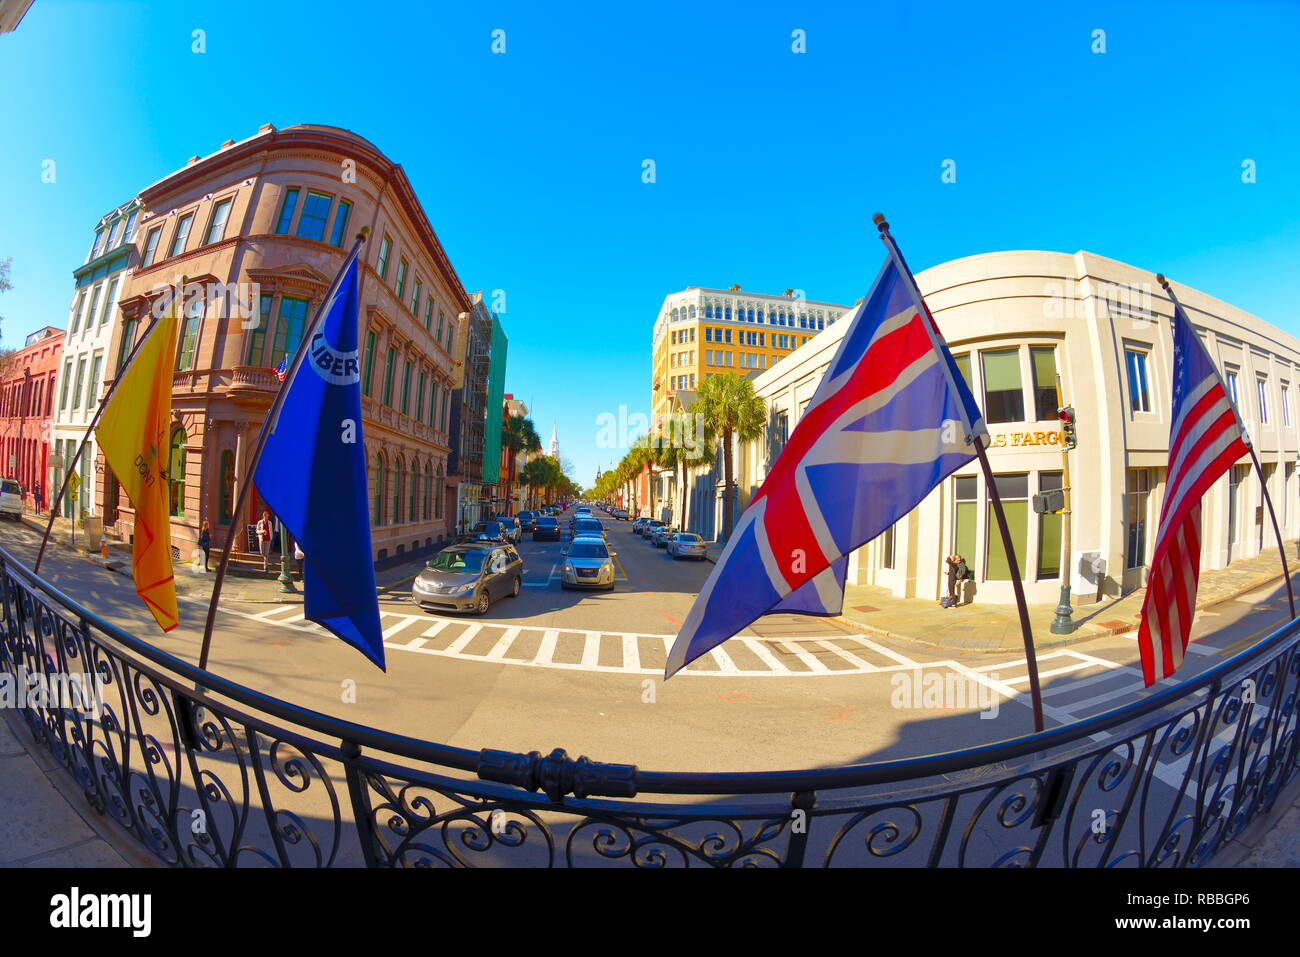 Colonial Era Exchange Building When Charleston was a British Colony with  Flags that Flew over the Building as Time Progressed - Stock Image